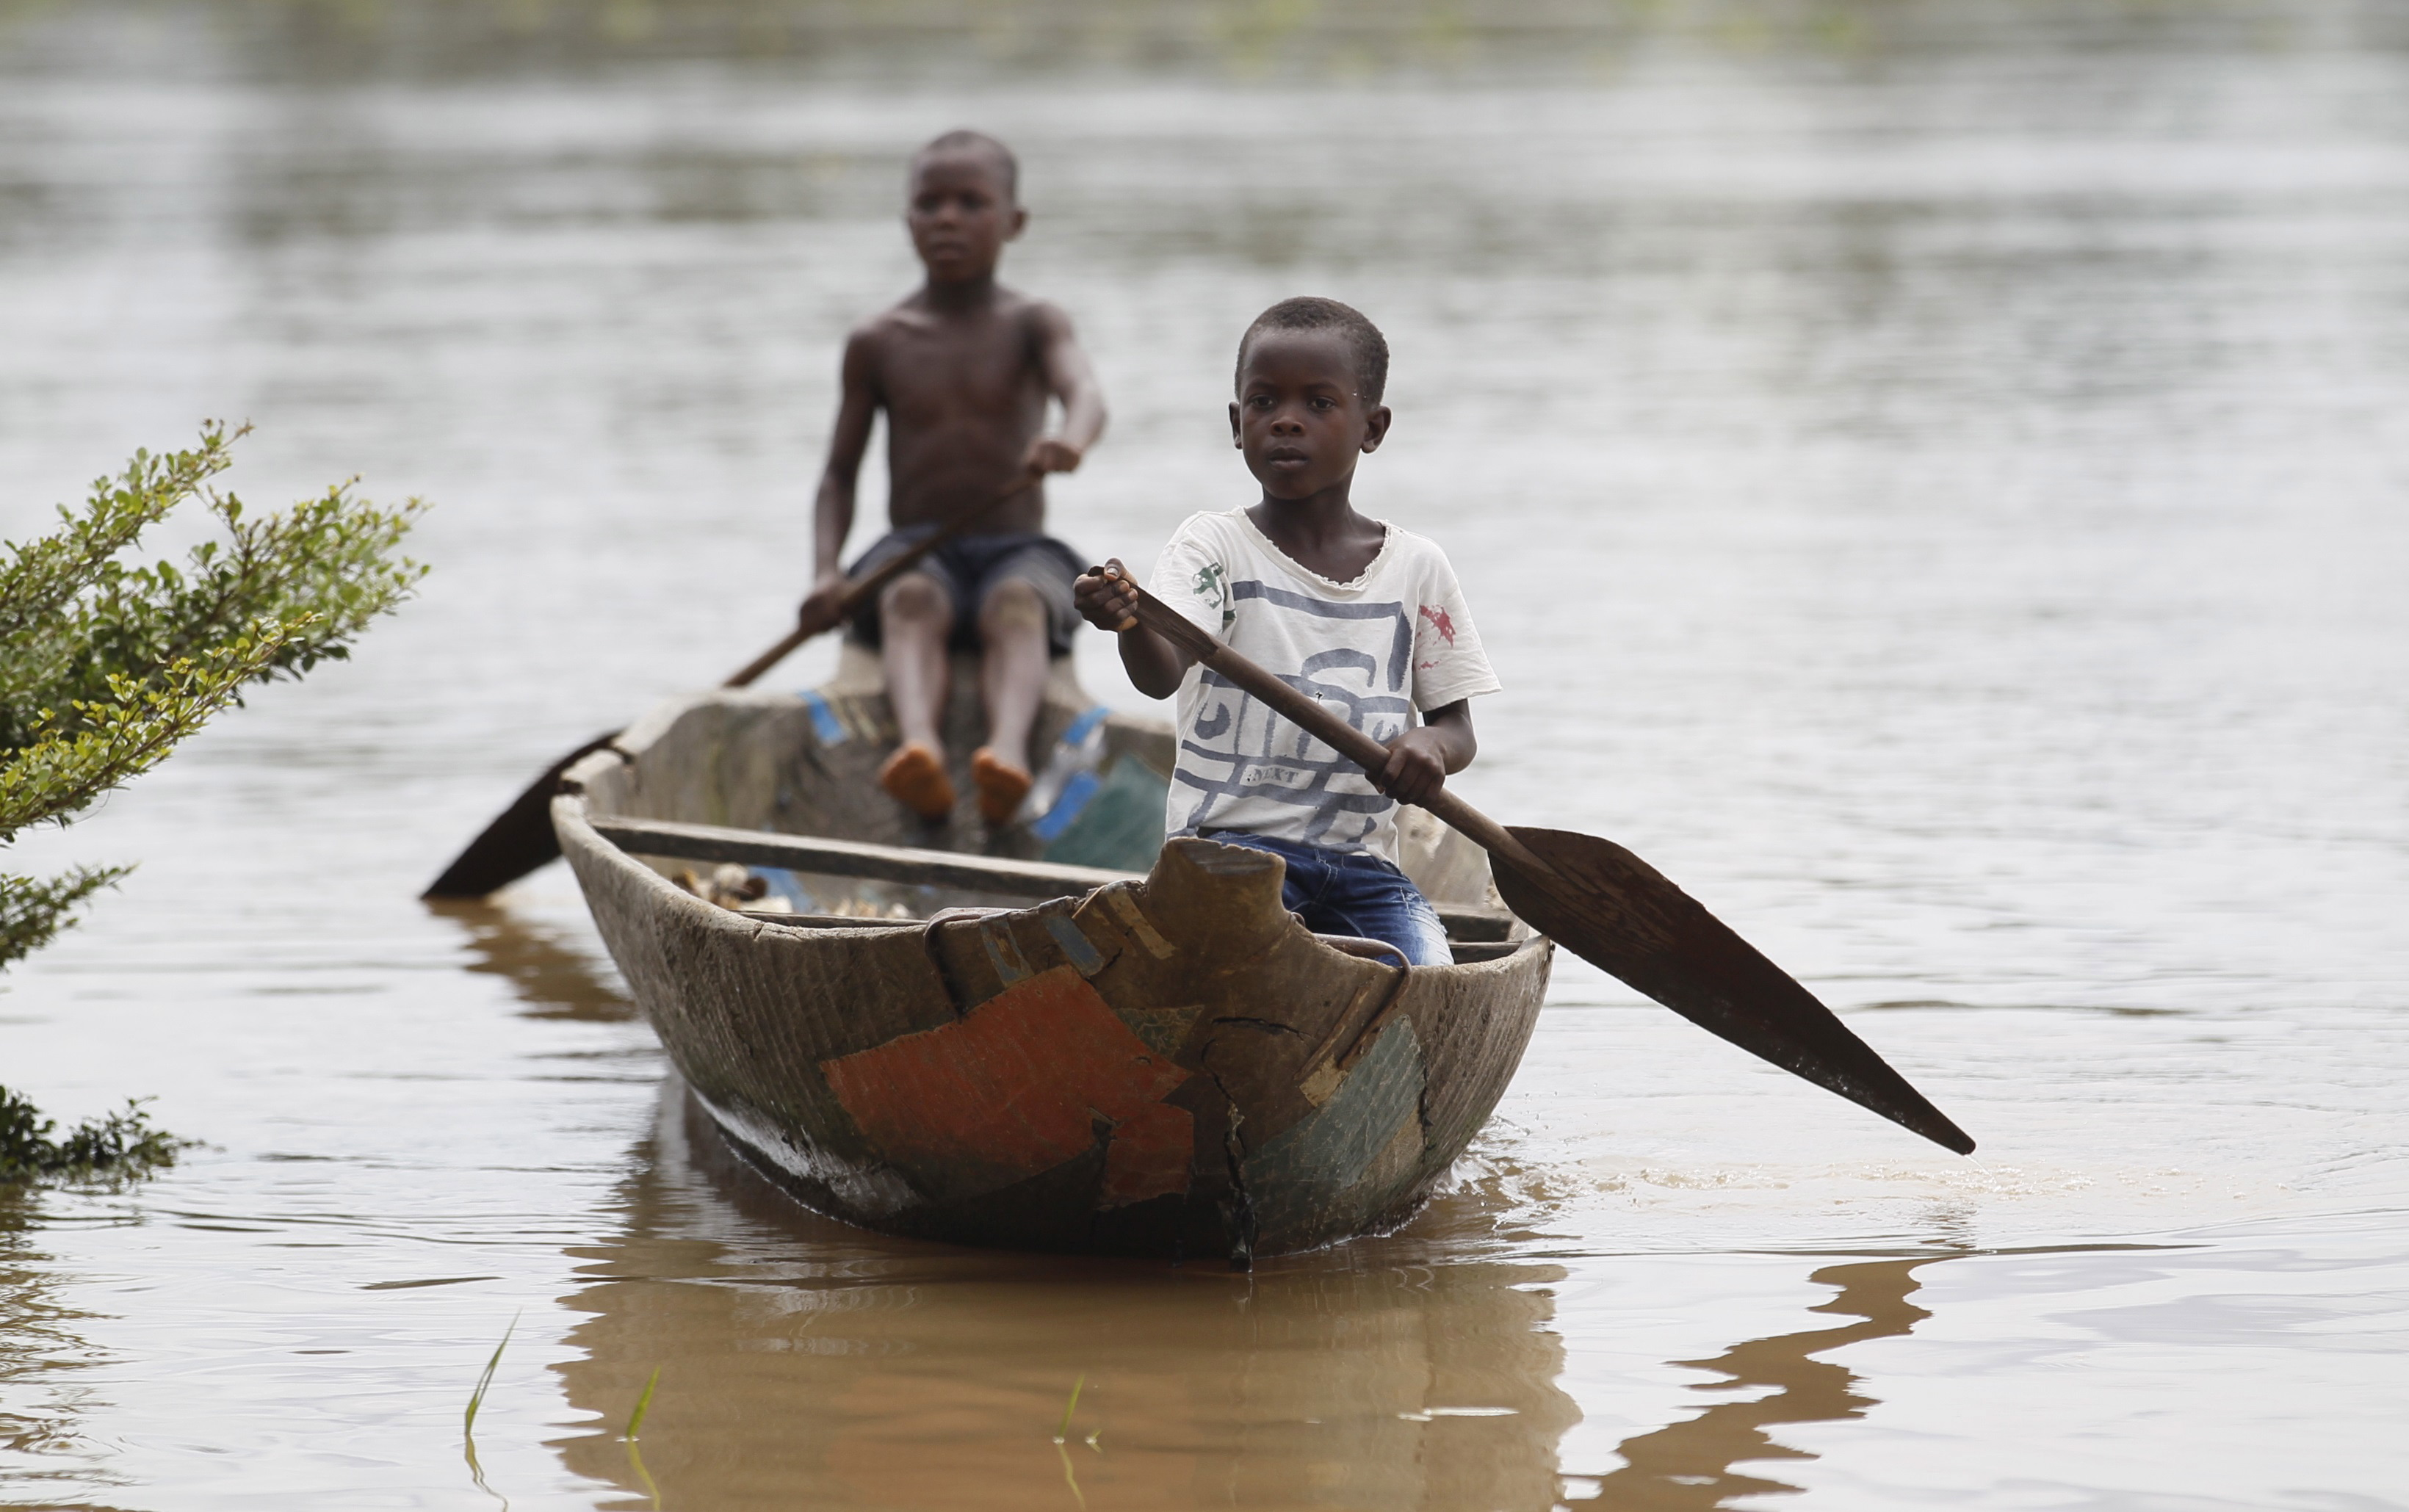 Two young boys paddle a canoe near the shore of the Nun River in Yeneka village in Nigeria's Bayelsa state on October 8, 2015.